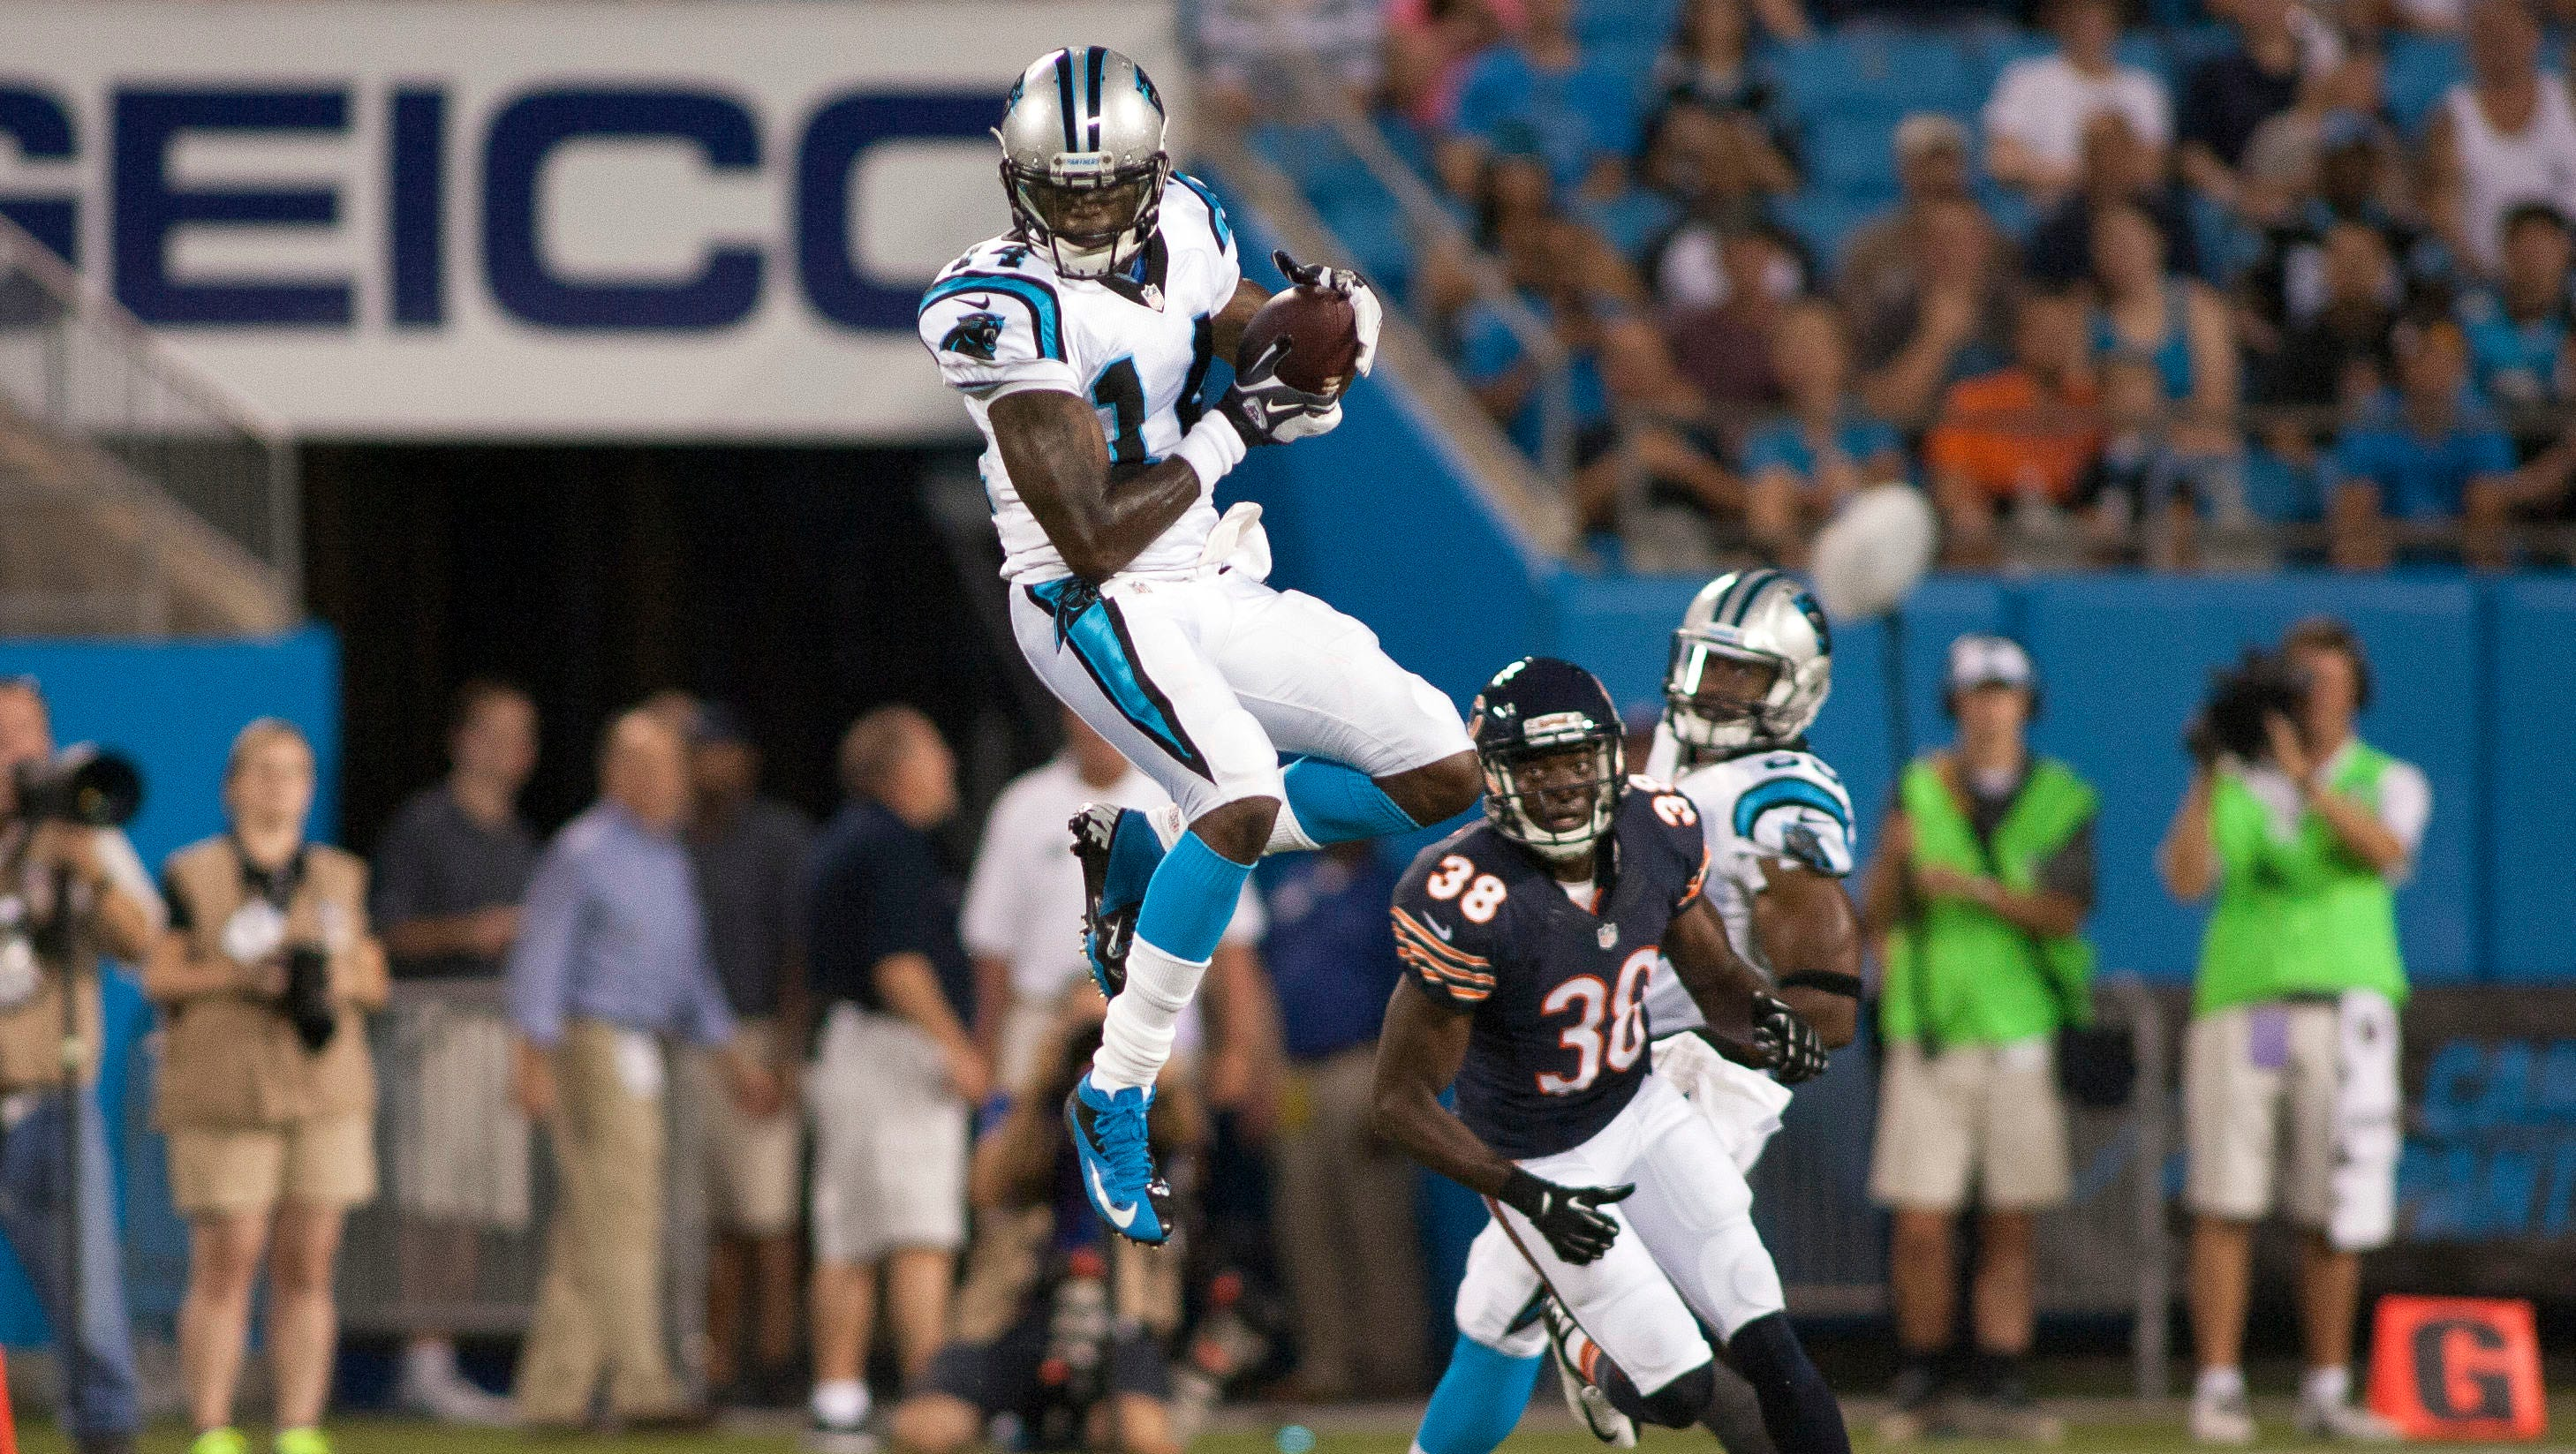 Carolina Panthers wide receiver Armanti Edwards (14) jumps up to catch a pass against the Chicago Bears during the first quarter.